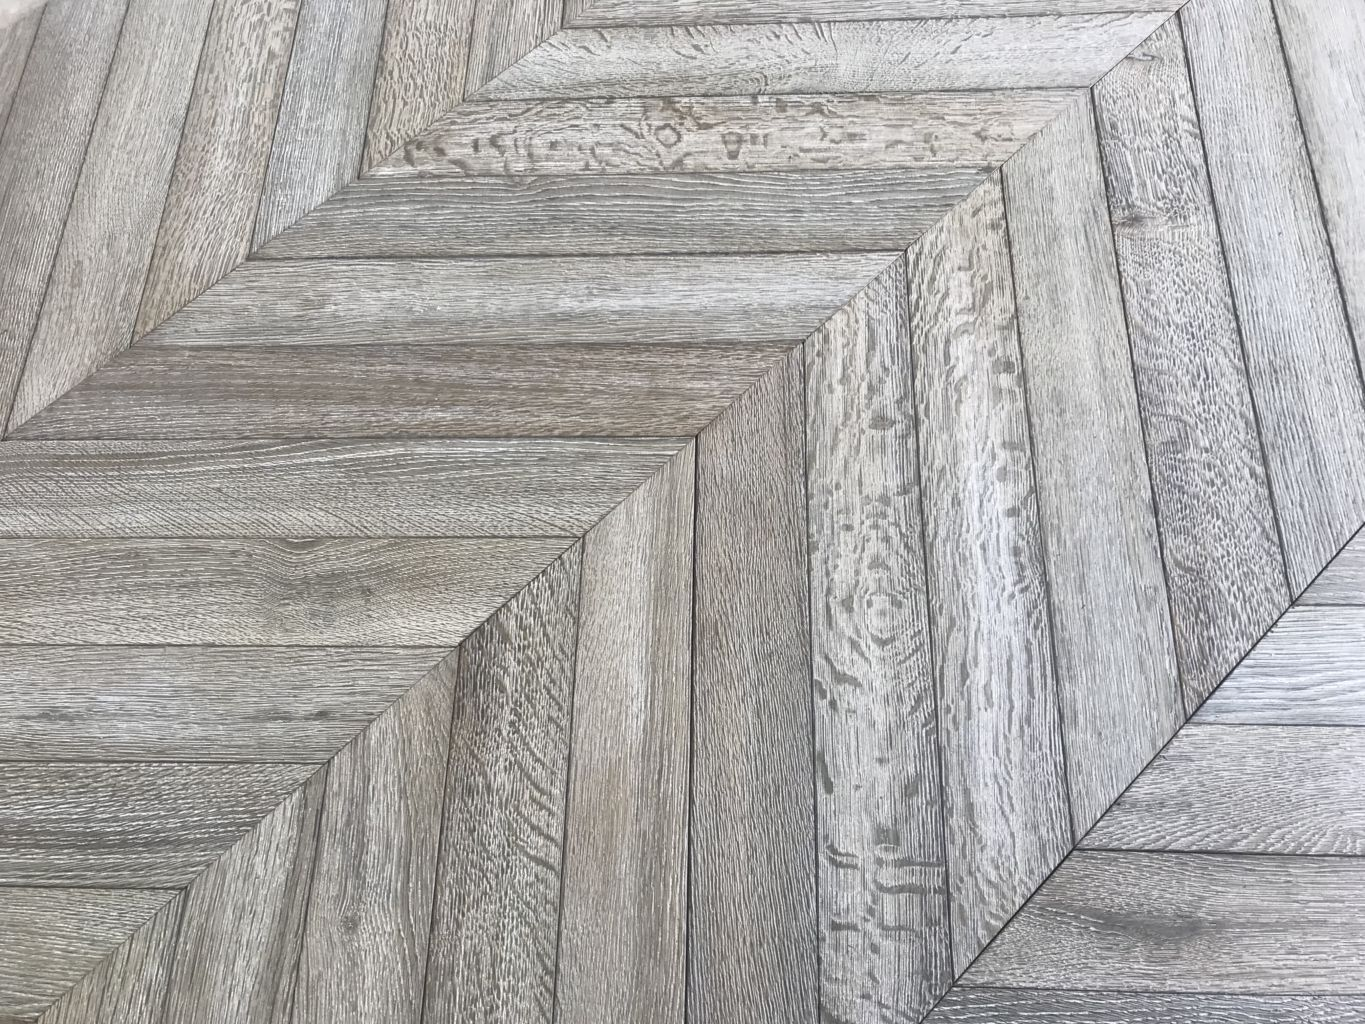 parquet vieilli point de hongrie in 2019 parquet flooring reclaimed parquet flooring